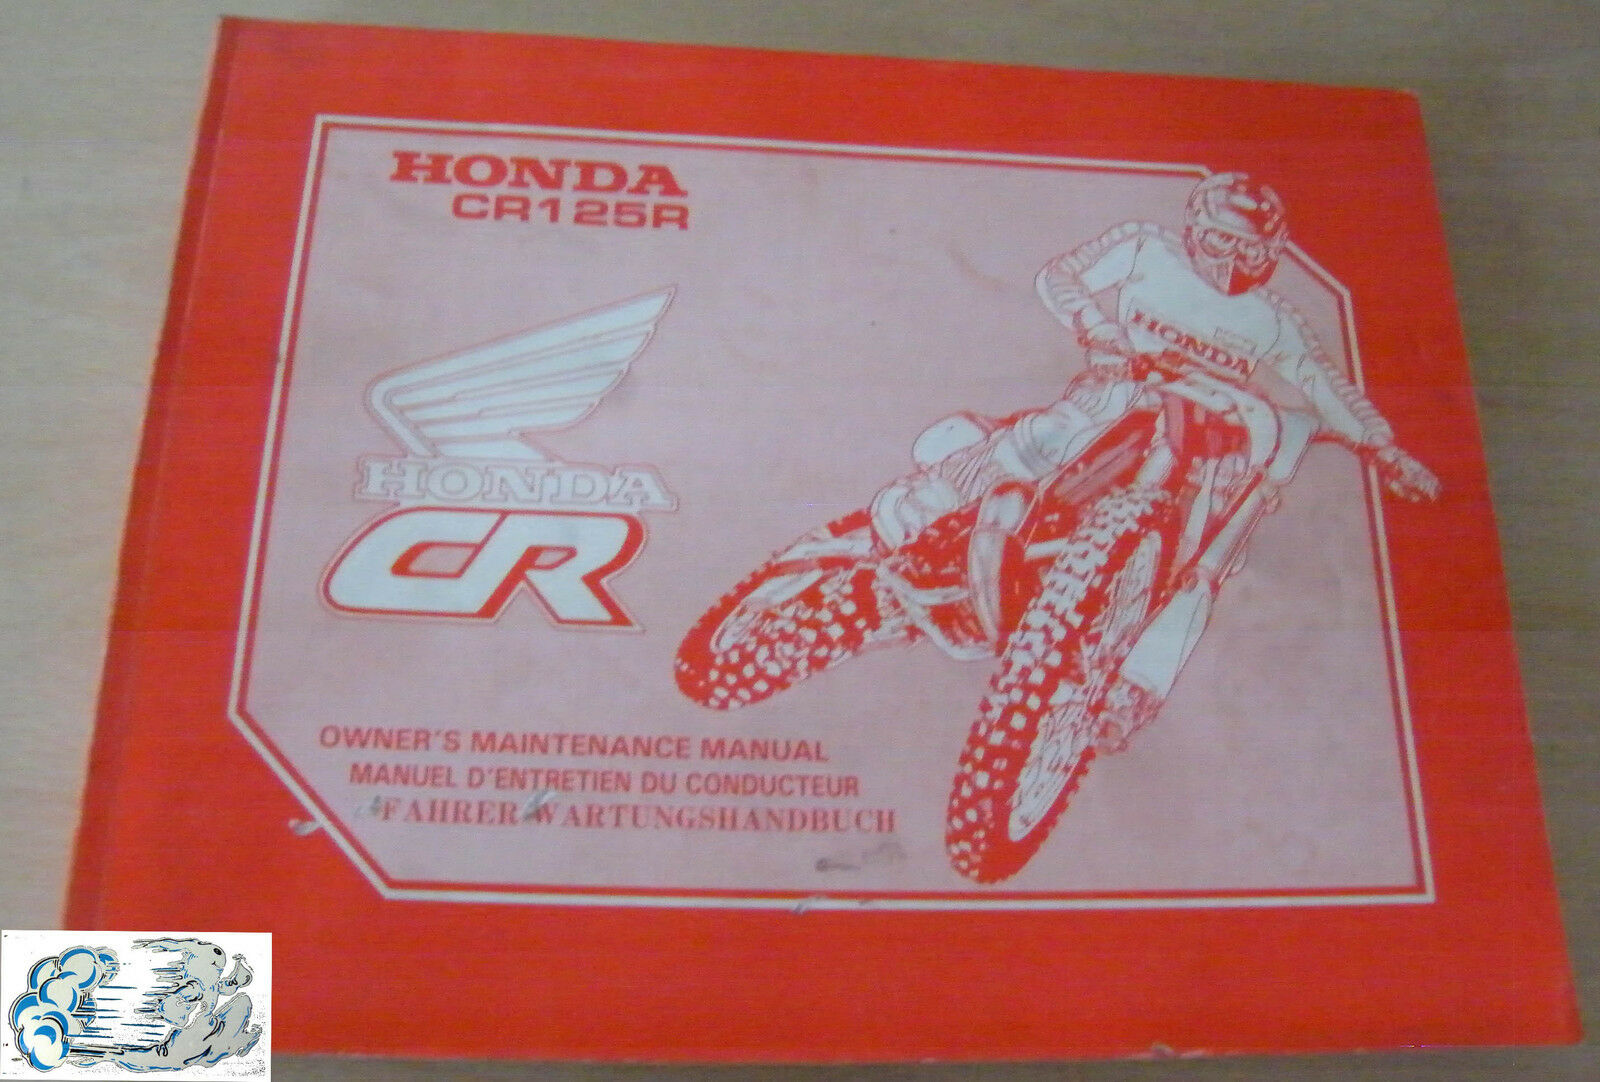 00X37-KZ4-6100 37KZ4610 Manual Oficina Honda CR125R